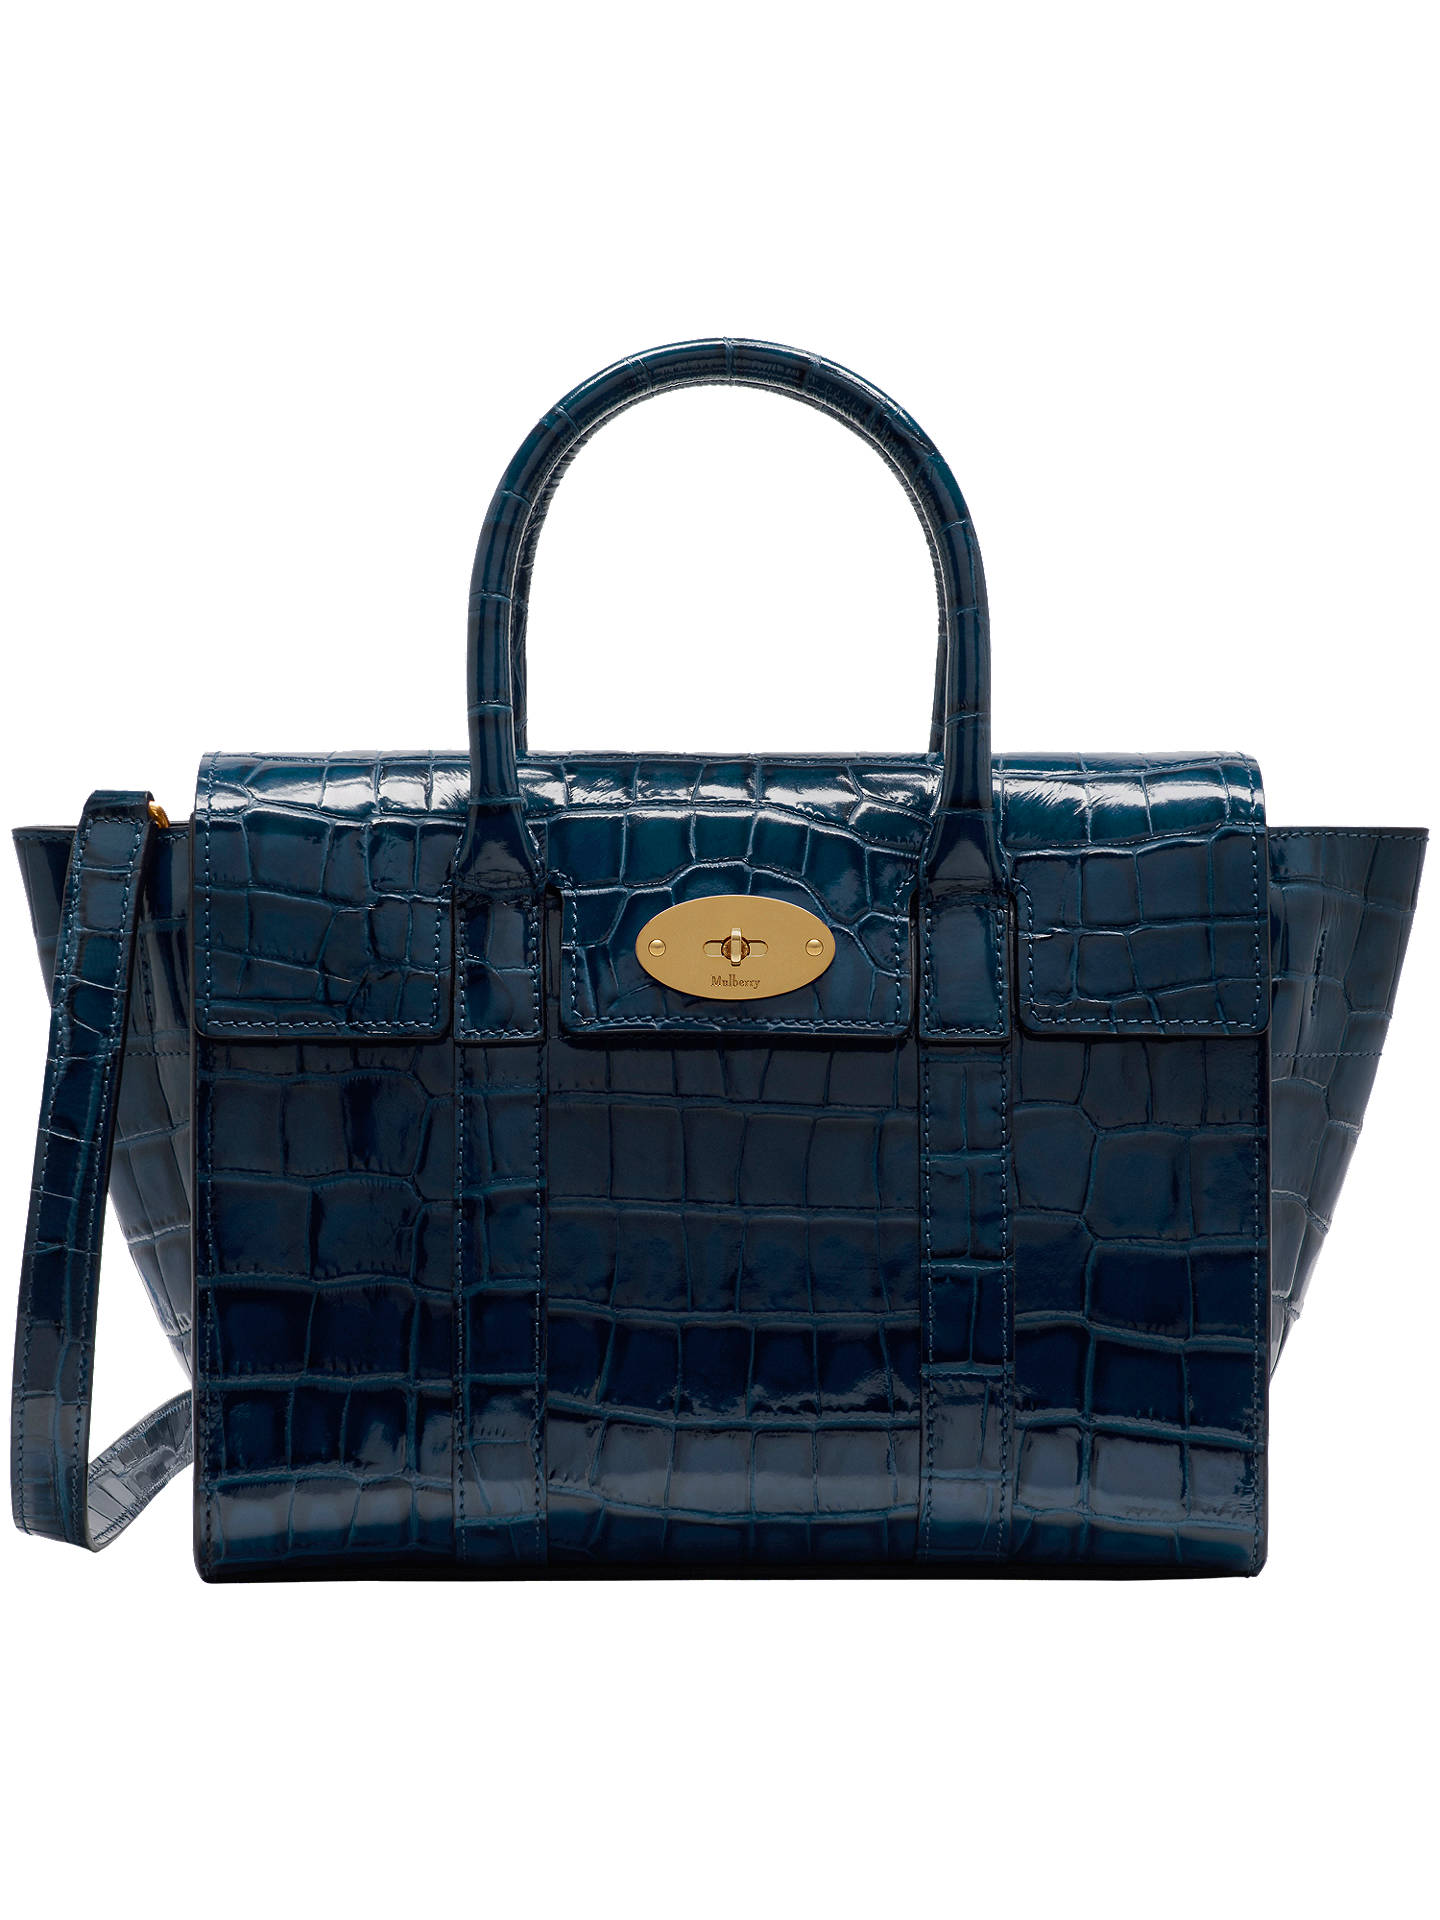 BuyMulberry Bayswater Leather Grab Bag 81fd53f6959fc